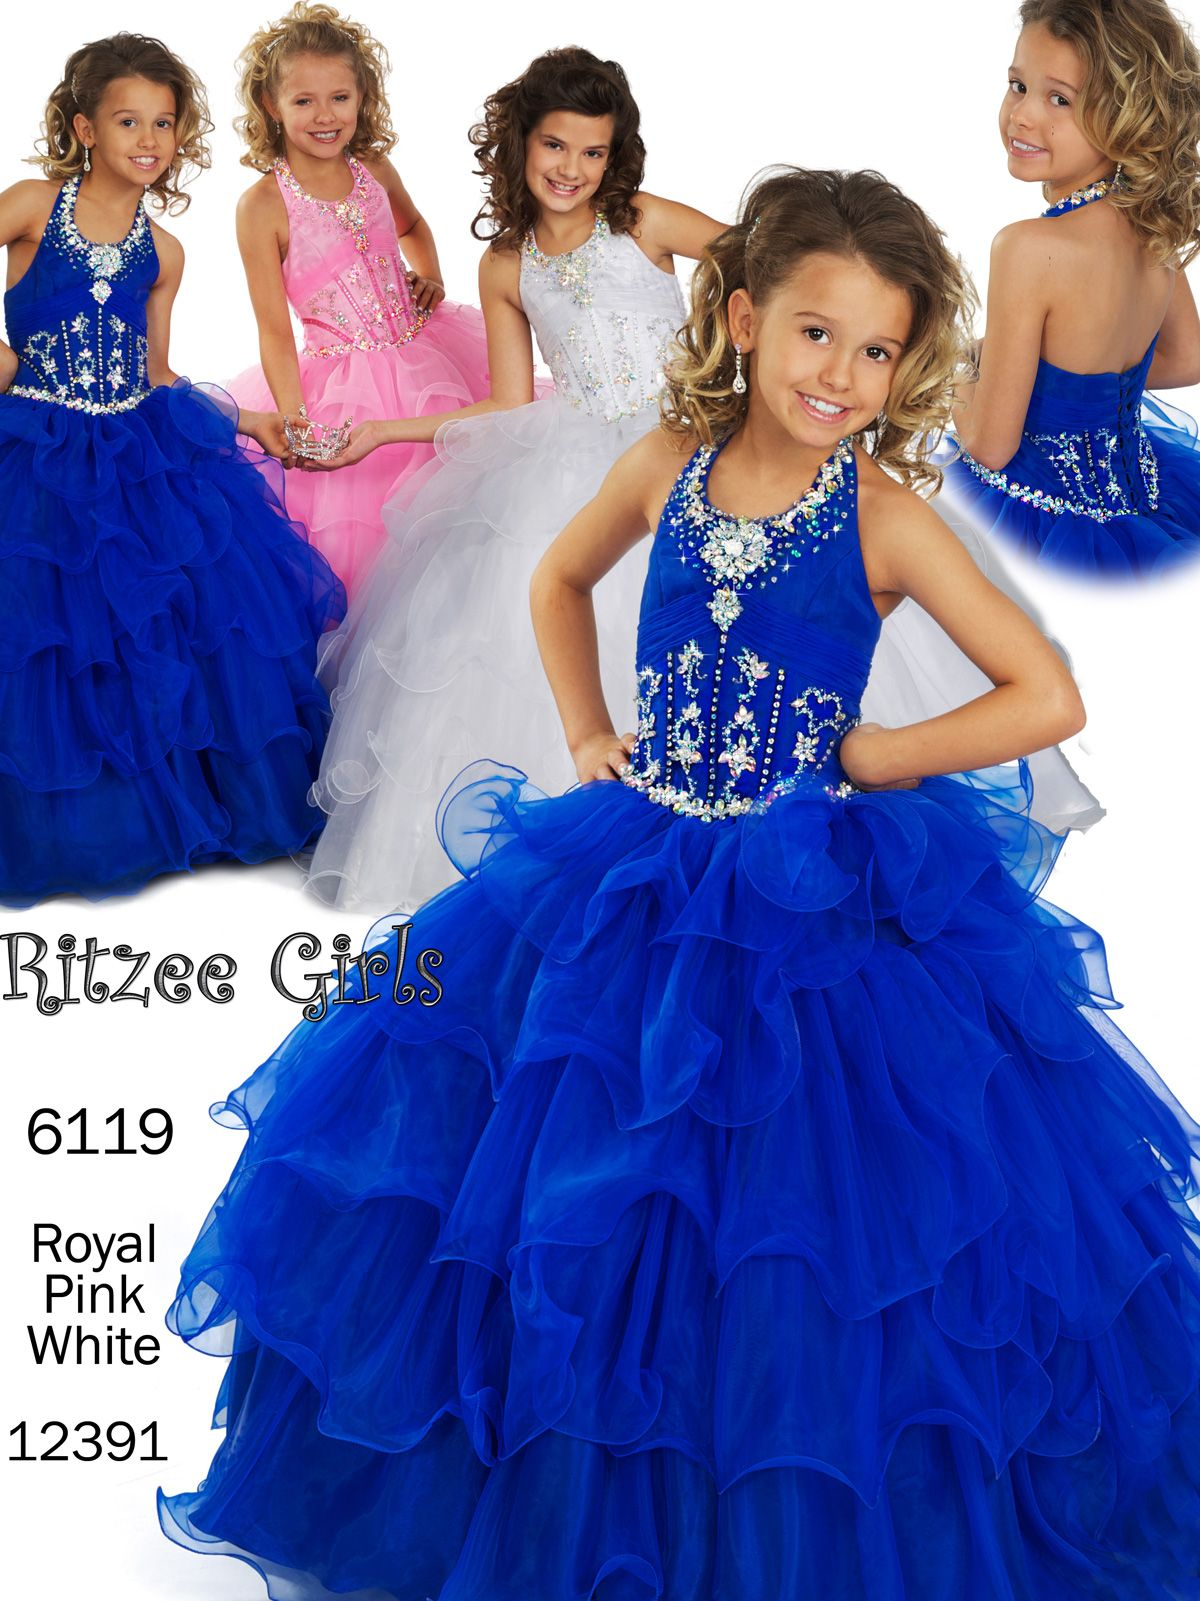 Size 12 White In StockPrincess inspired organza pageant dress Ritzee Girls  6119. Girls fairy pageant